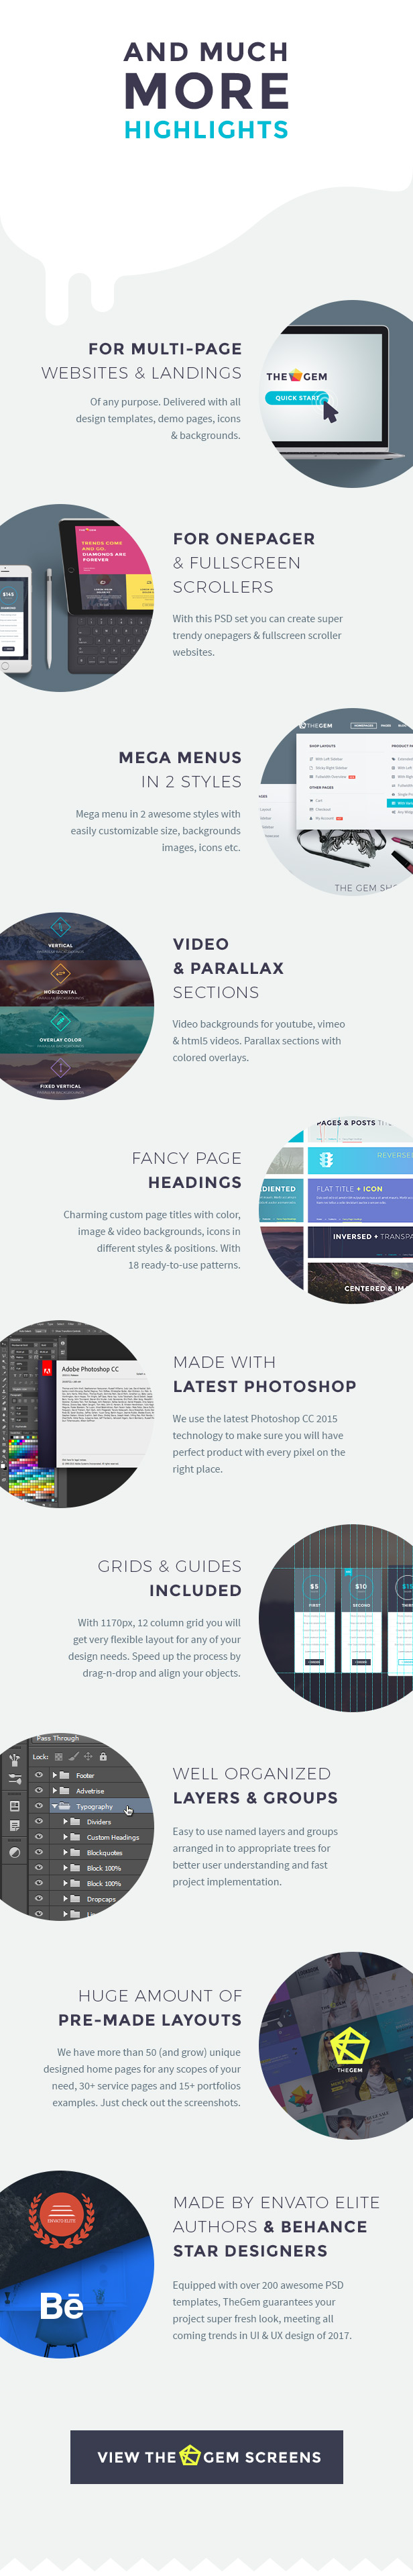 TheGem - Creative Multi-Purpose PSD Template - 6